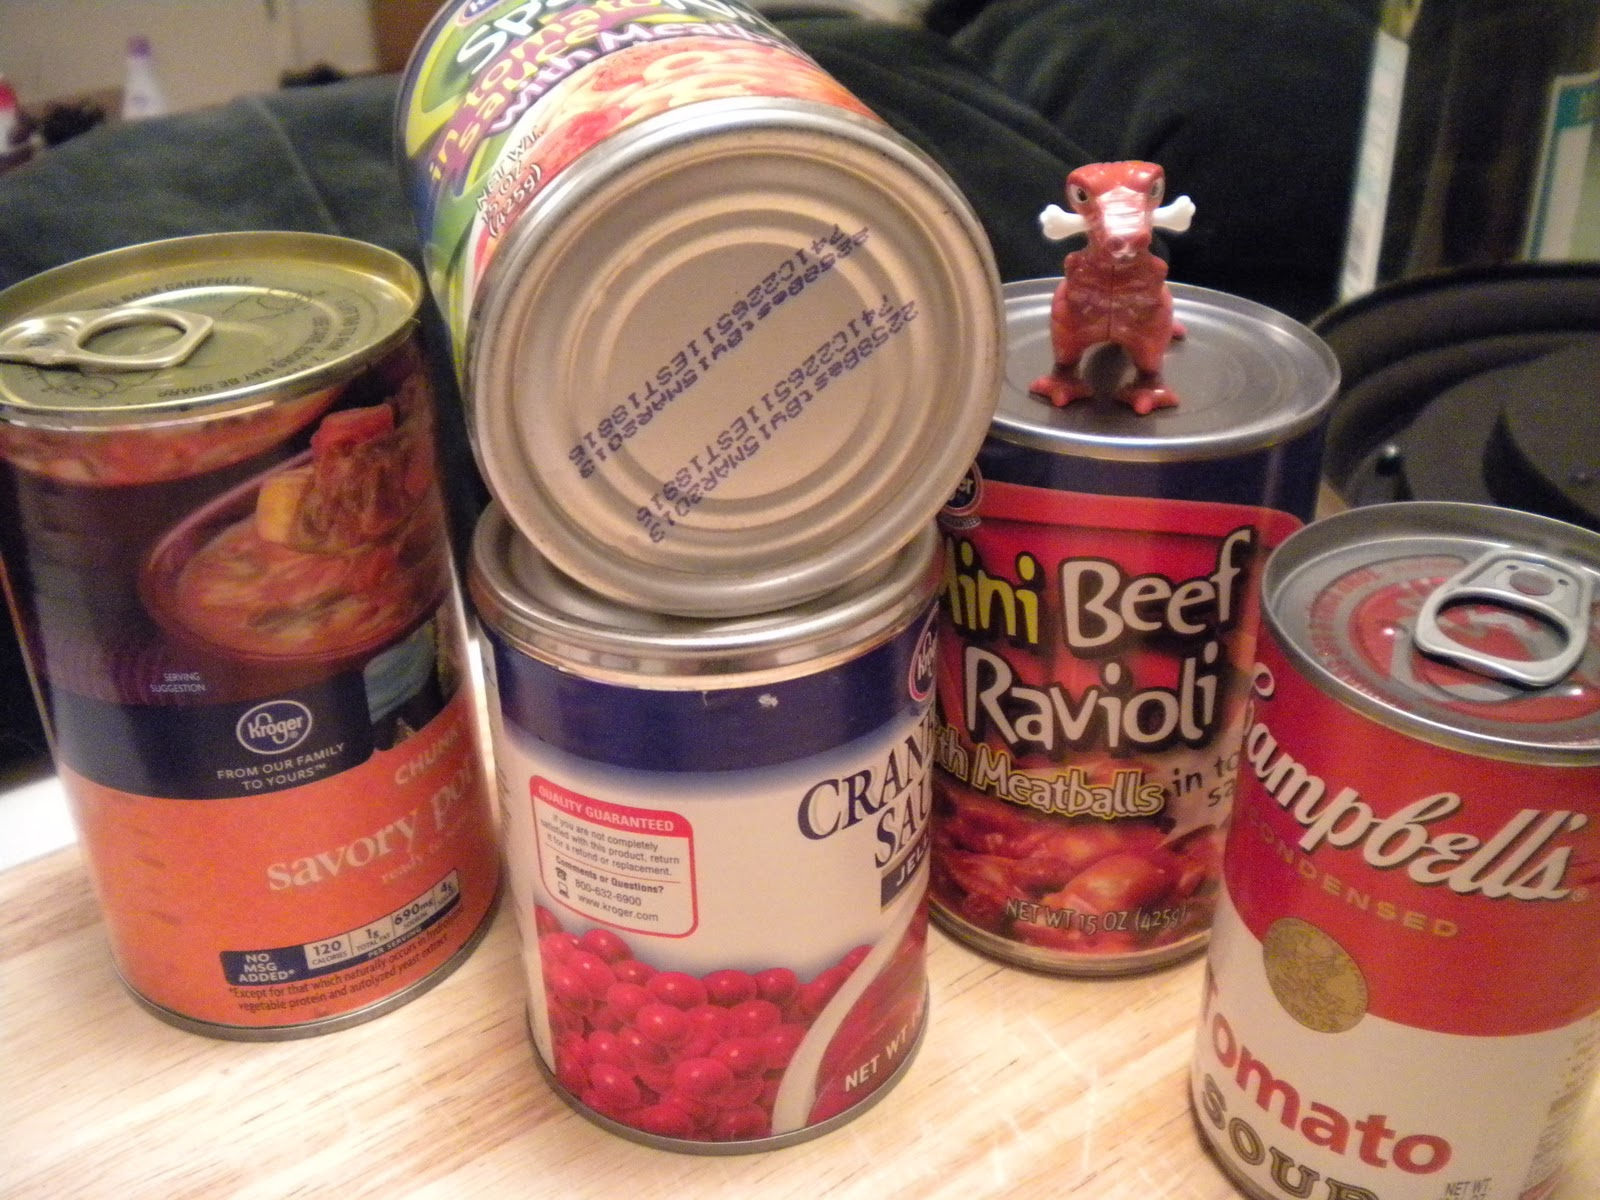 I donated cans of food that I had already purchased that contained high fructose corn syrup. :(